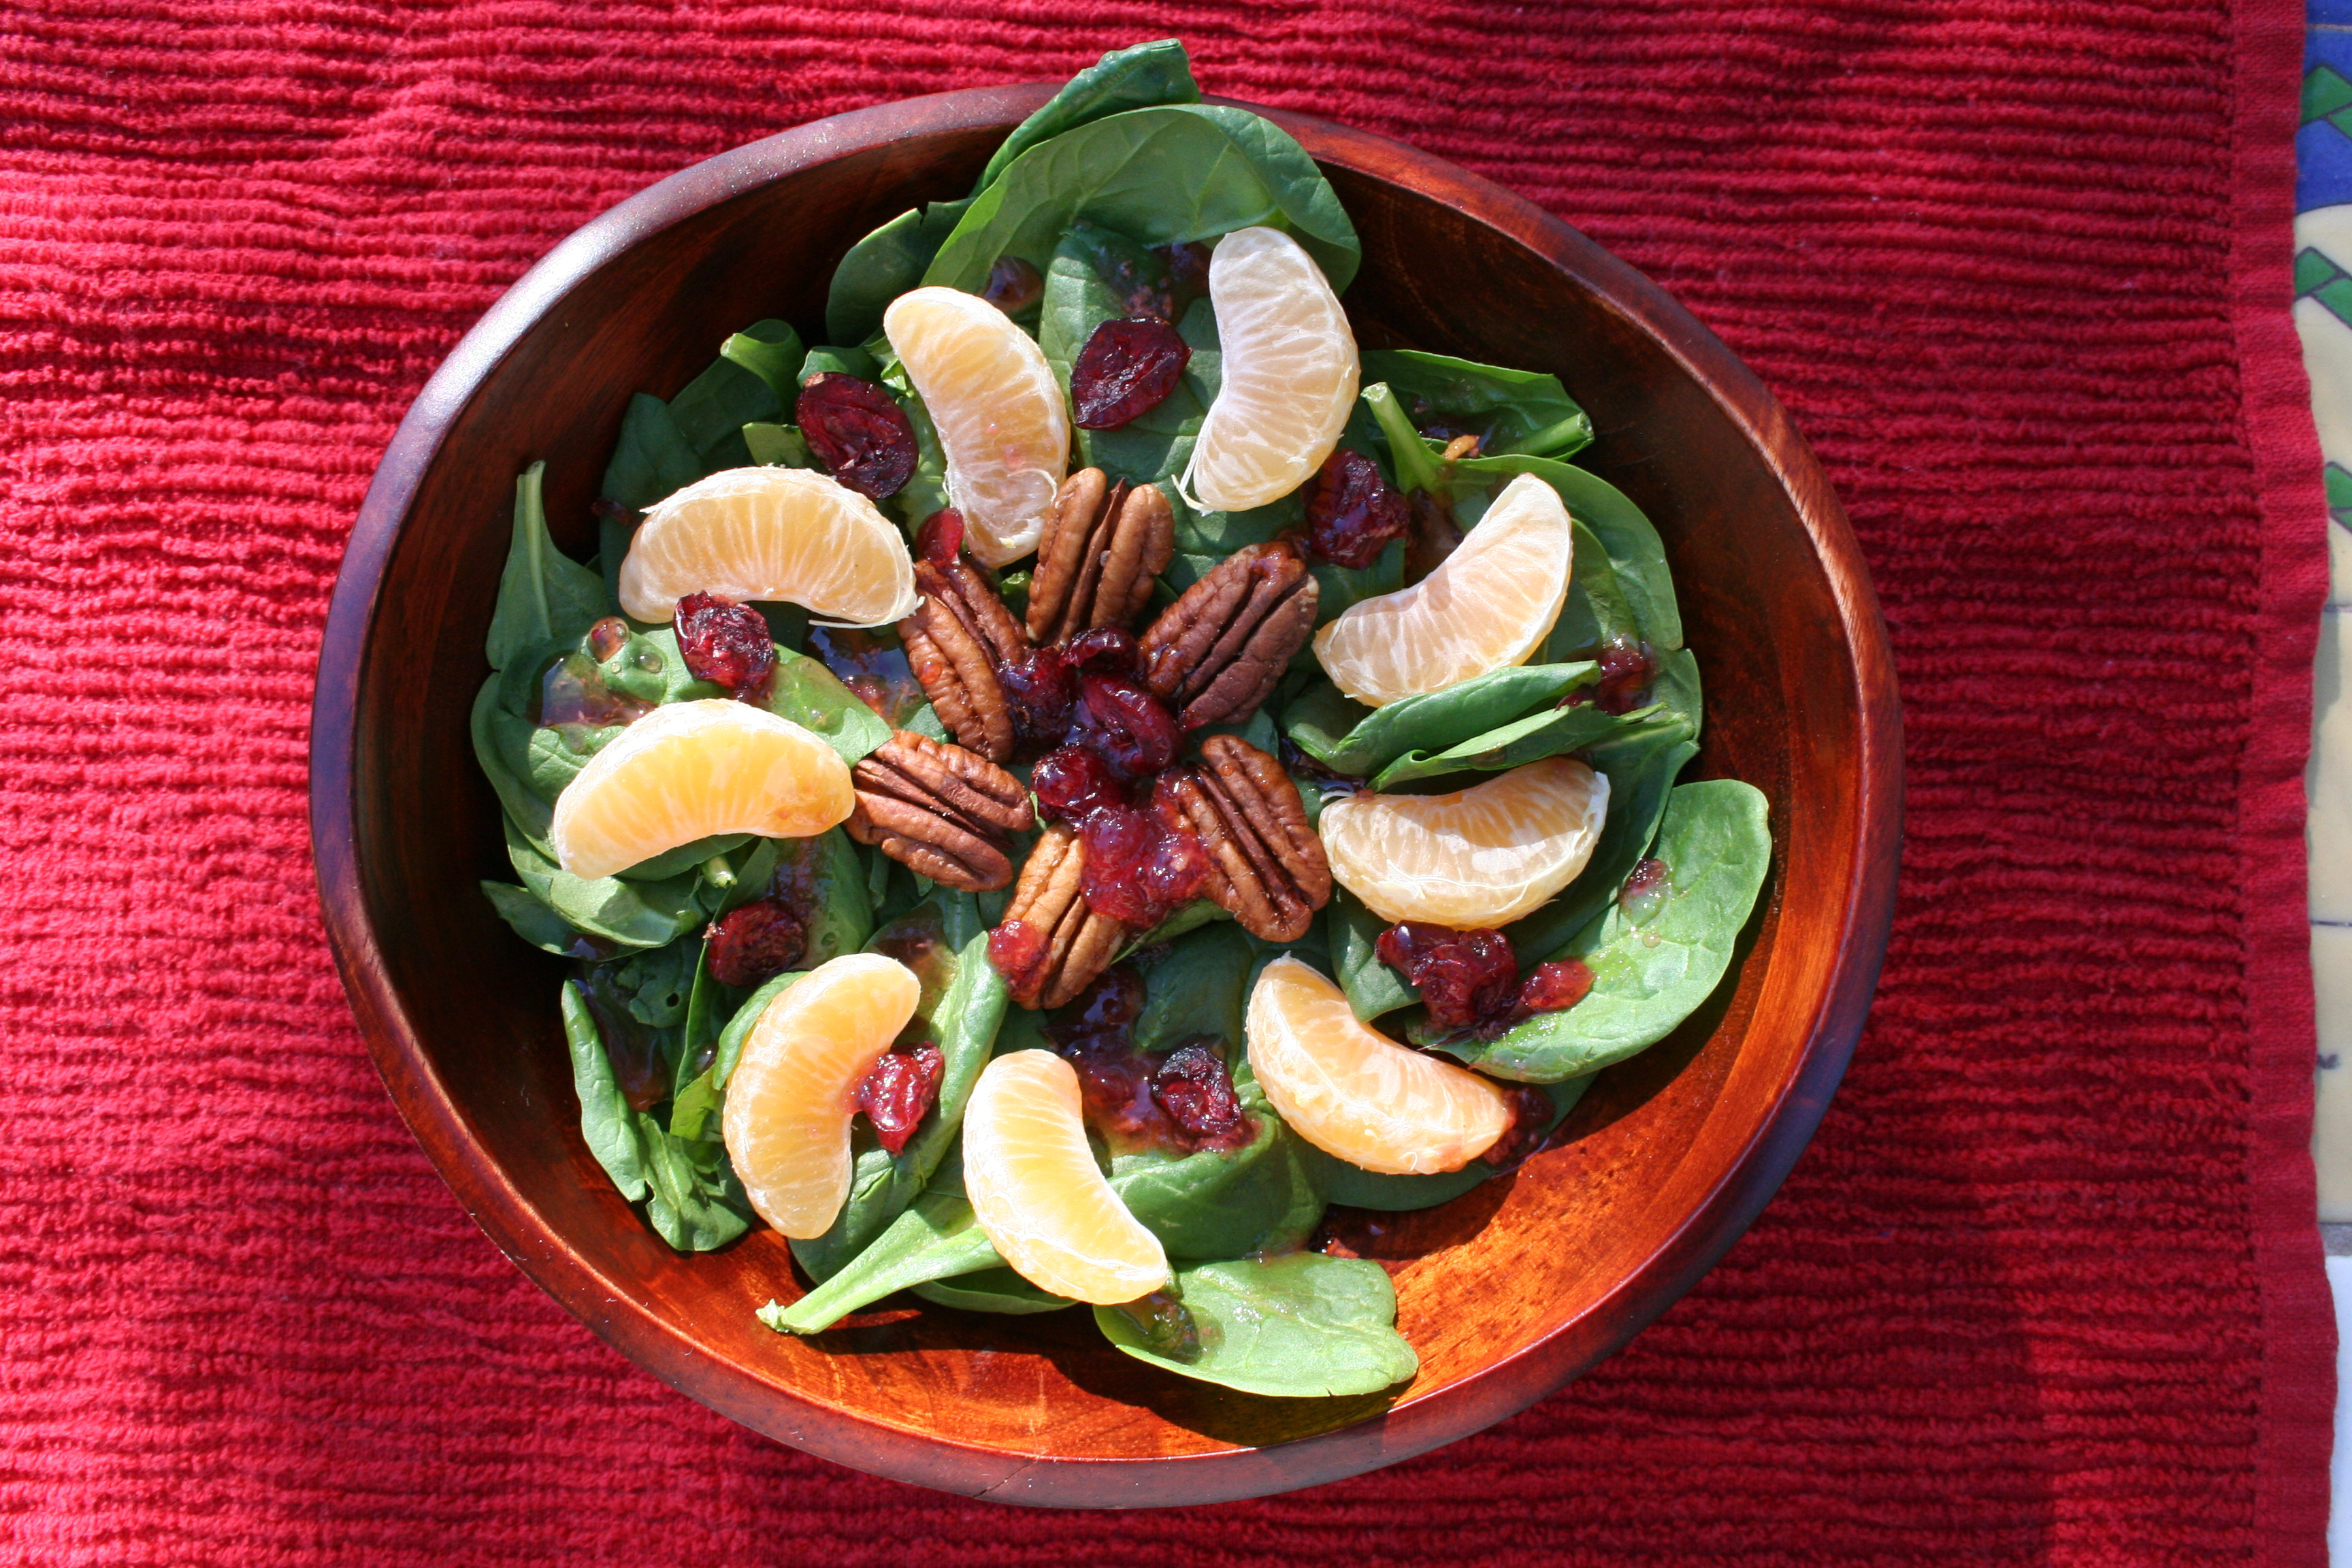 Cranberry, Tangerine, and Pecan Salad with Cranberry Orange Vanilla Dressing